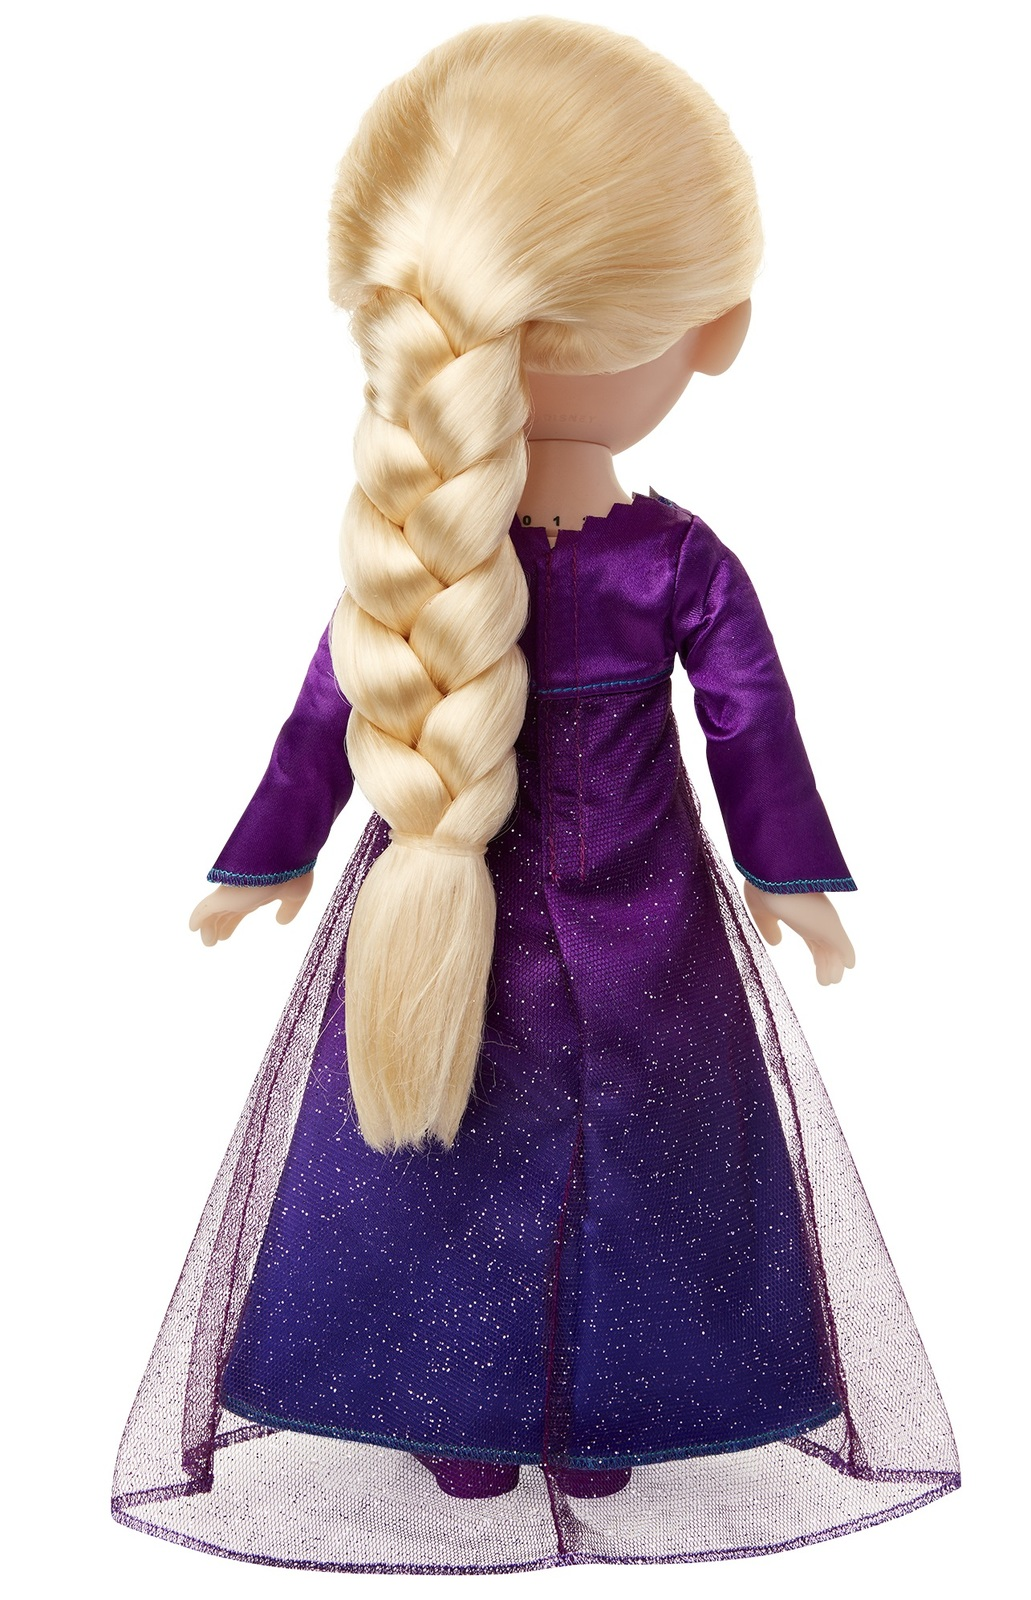 Frozen II: Singing Elsa - Musical Feature Doll image